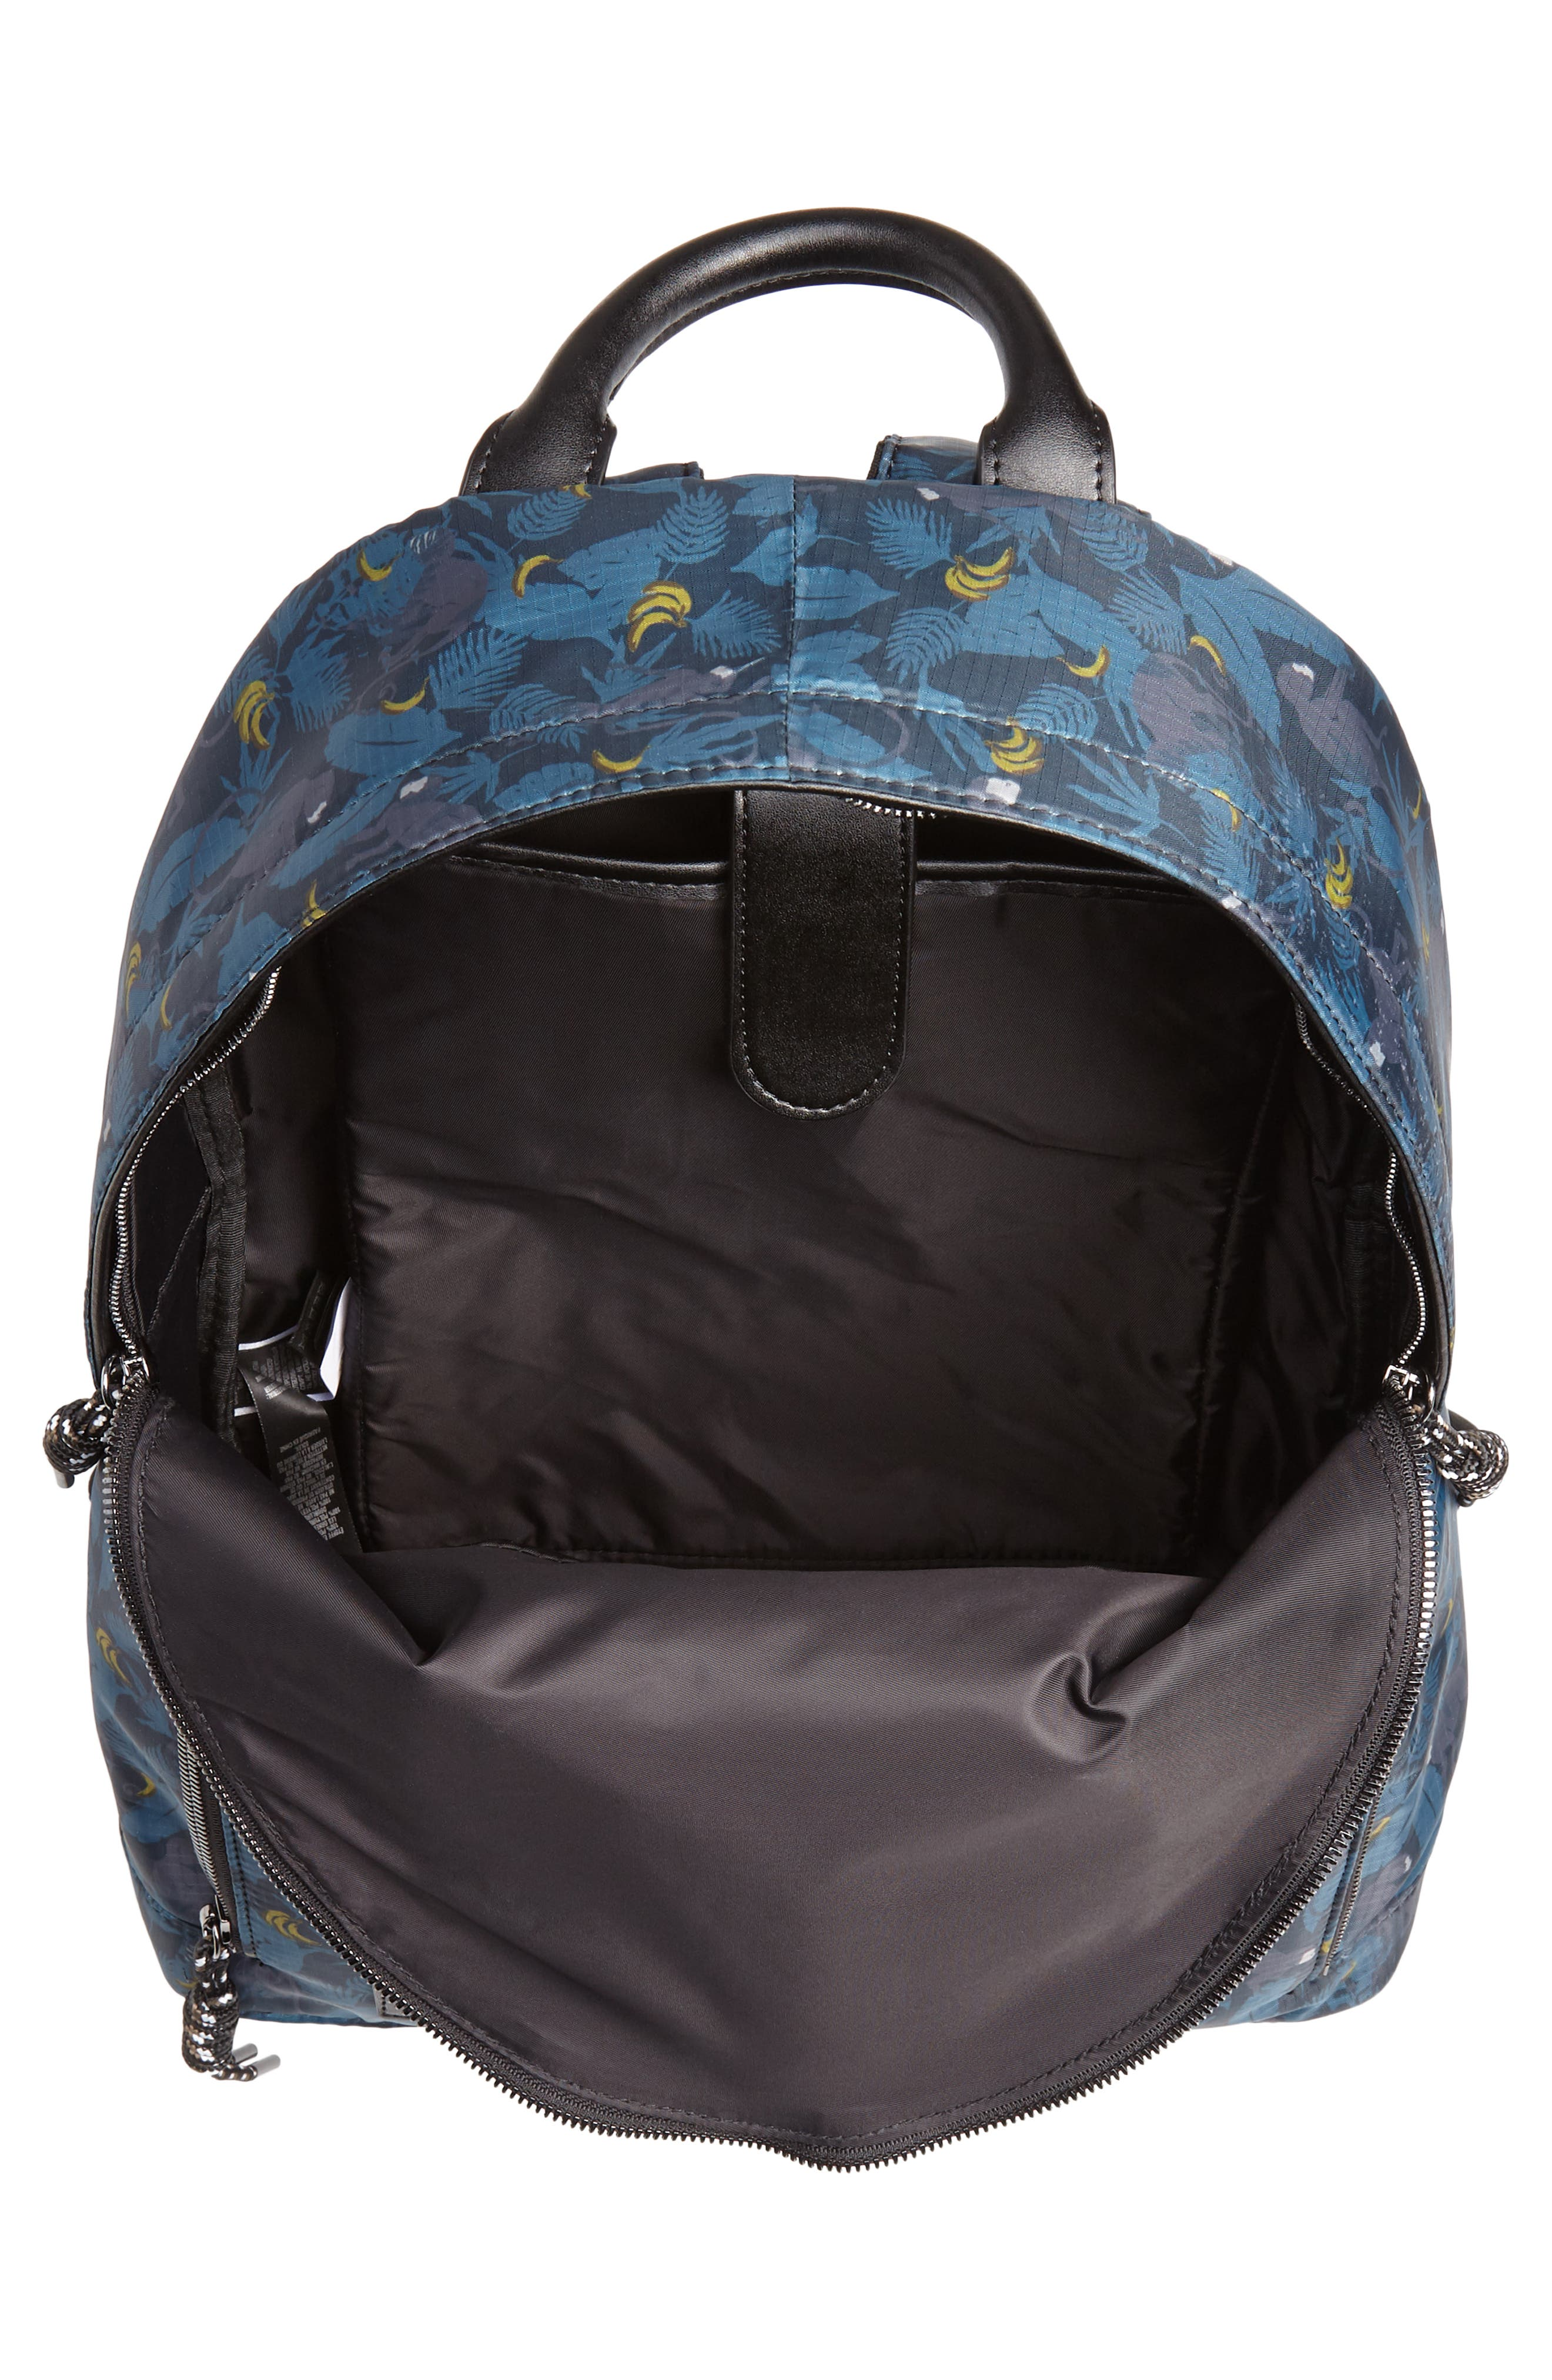 Primate Print Backpack,                             Alternate thumbnail 4, color,                             NAVY